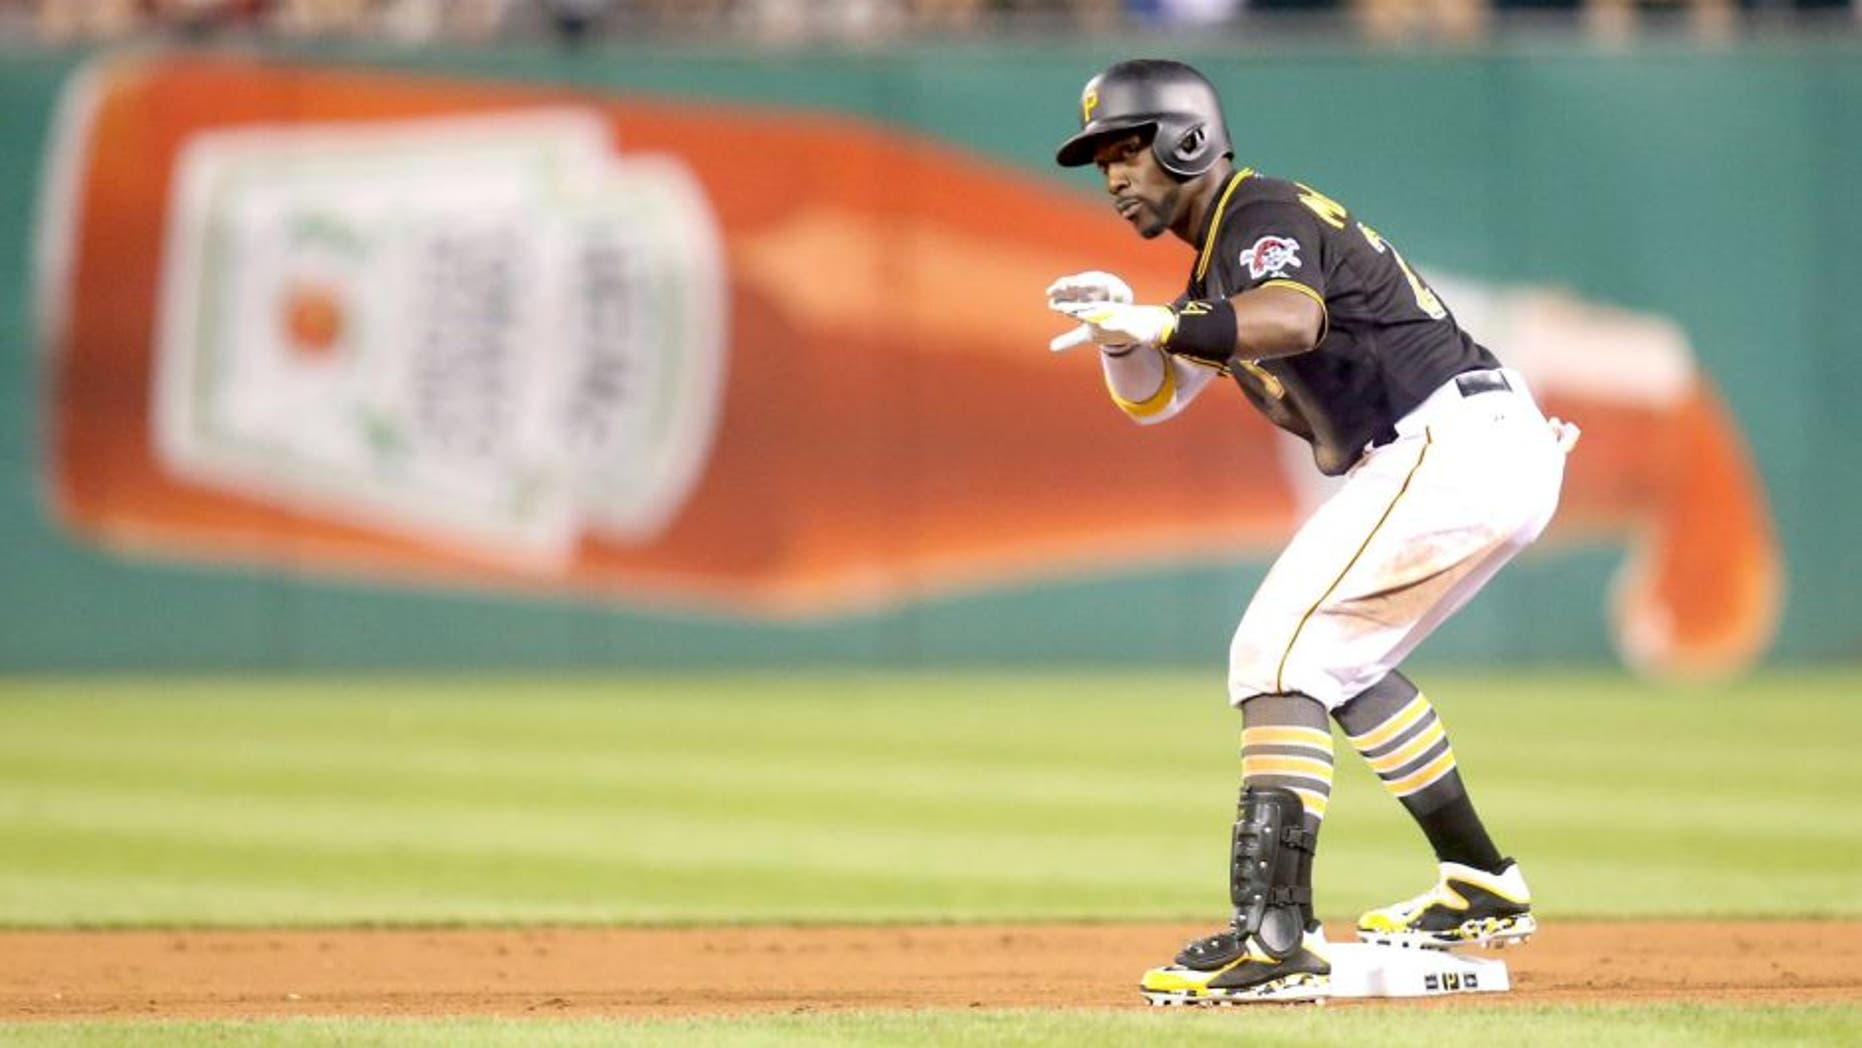 Jun 26, 2015; Pittsburgh, PA, USA; Pittsburgh Pirates center fielder Andrew McCutchen (22) reacts at second base after hitting a ground rule double against the Atlanta Braves during the tenth inning at PNC Park. The Pirates won 3-2 in ten innings. Mandatory Credit: Charles LeClaire-USA TODAY Sports